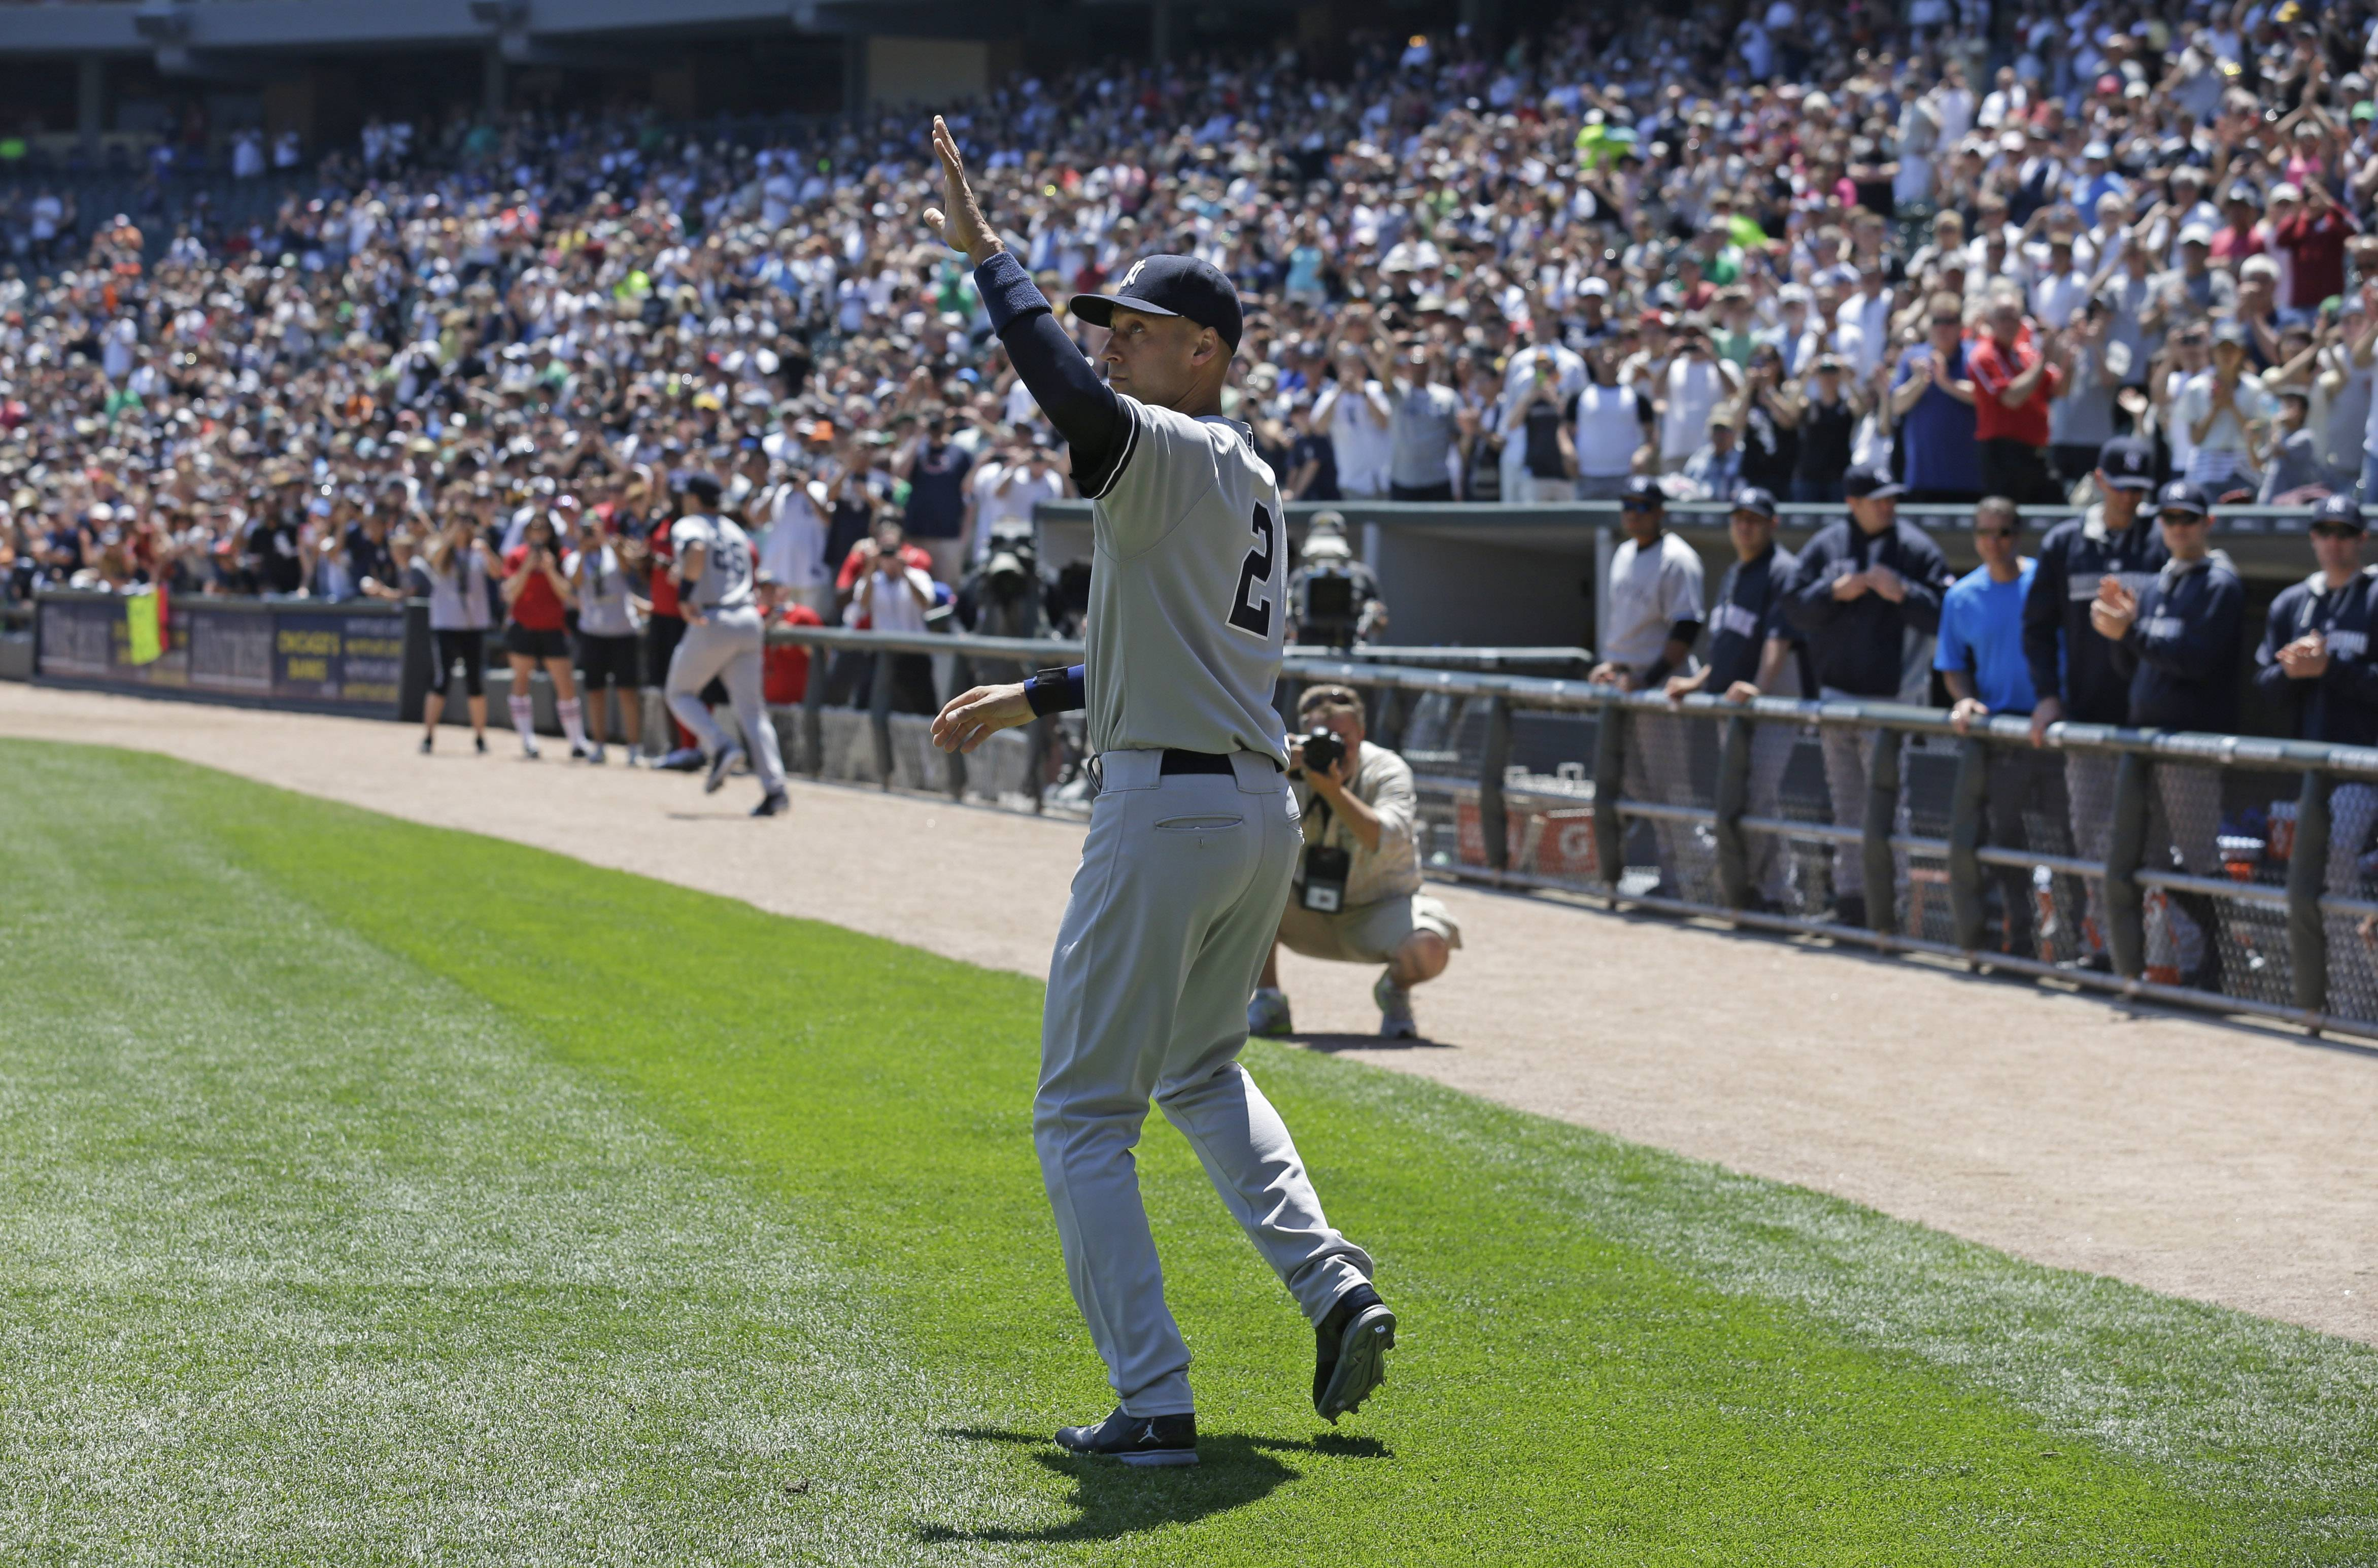 New York Yankees shortstop Derek Jeter waves to the crowd after being presented with gifts from the White Sox Sunday's game at U.S. Cellular Field. Jeter then went out and got 4 hits in the Yankees' 7-1 victory.